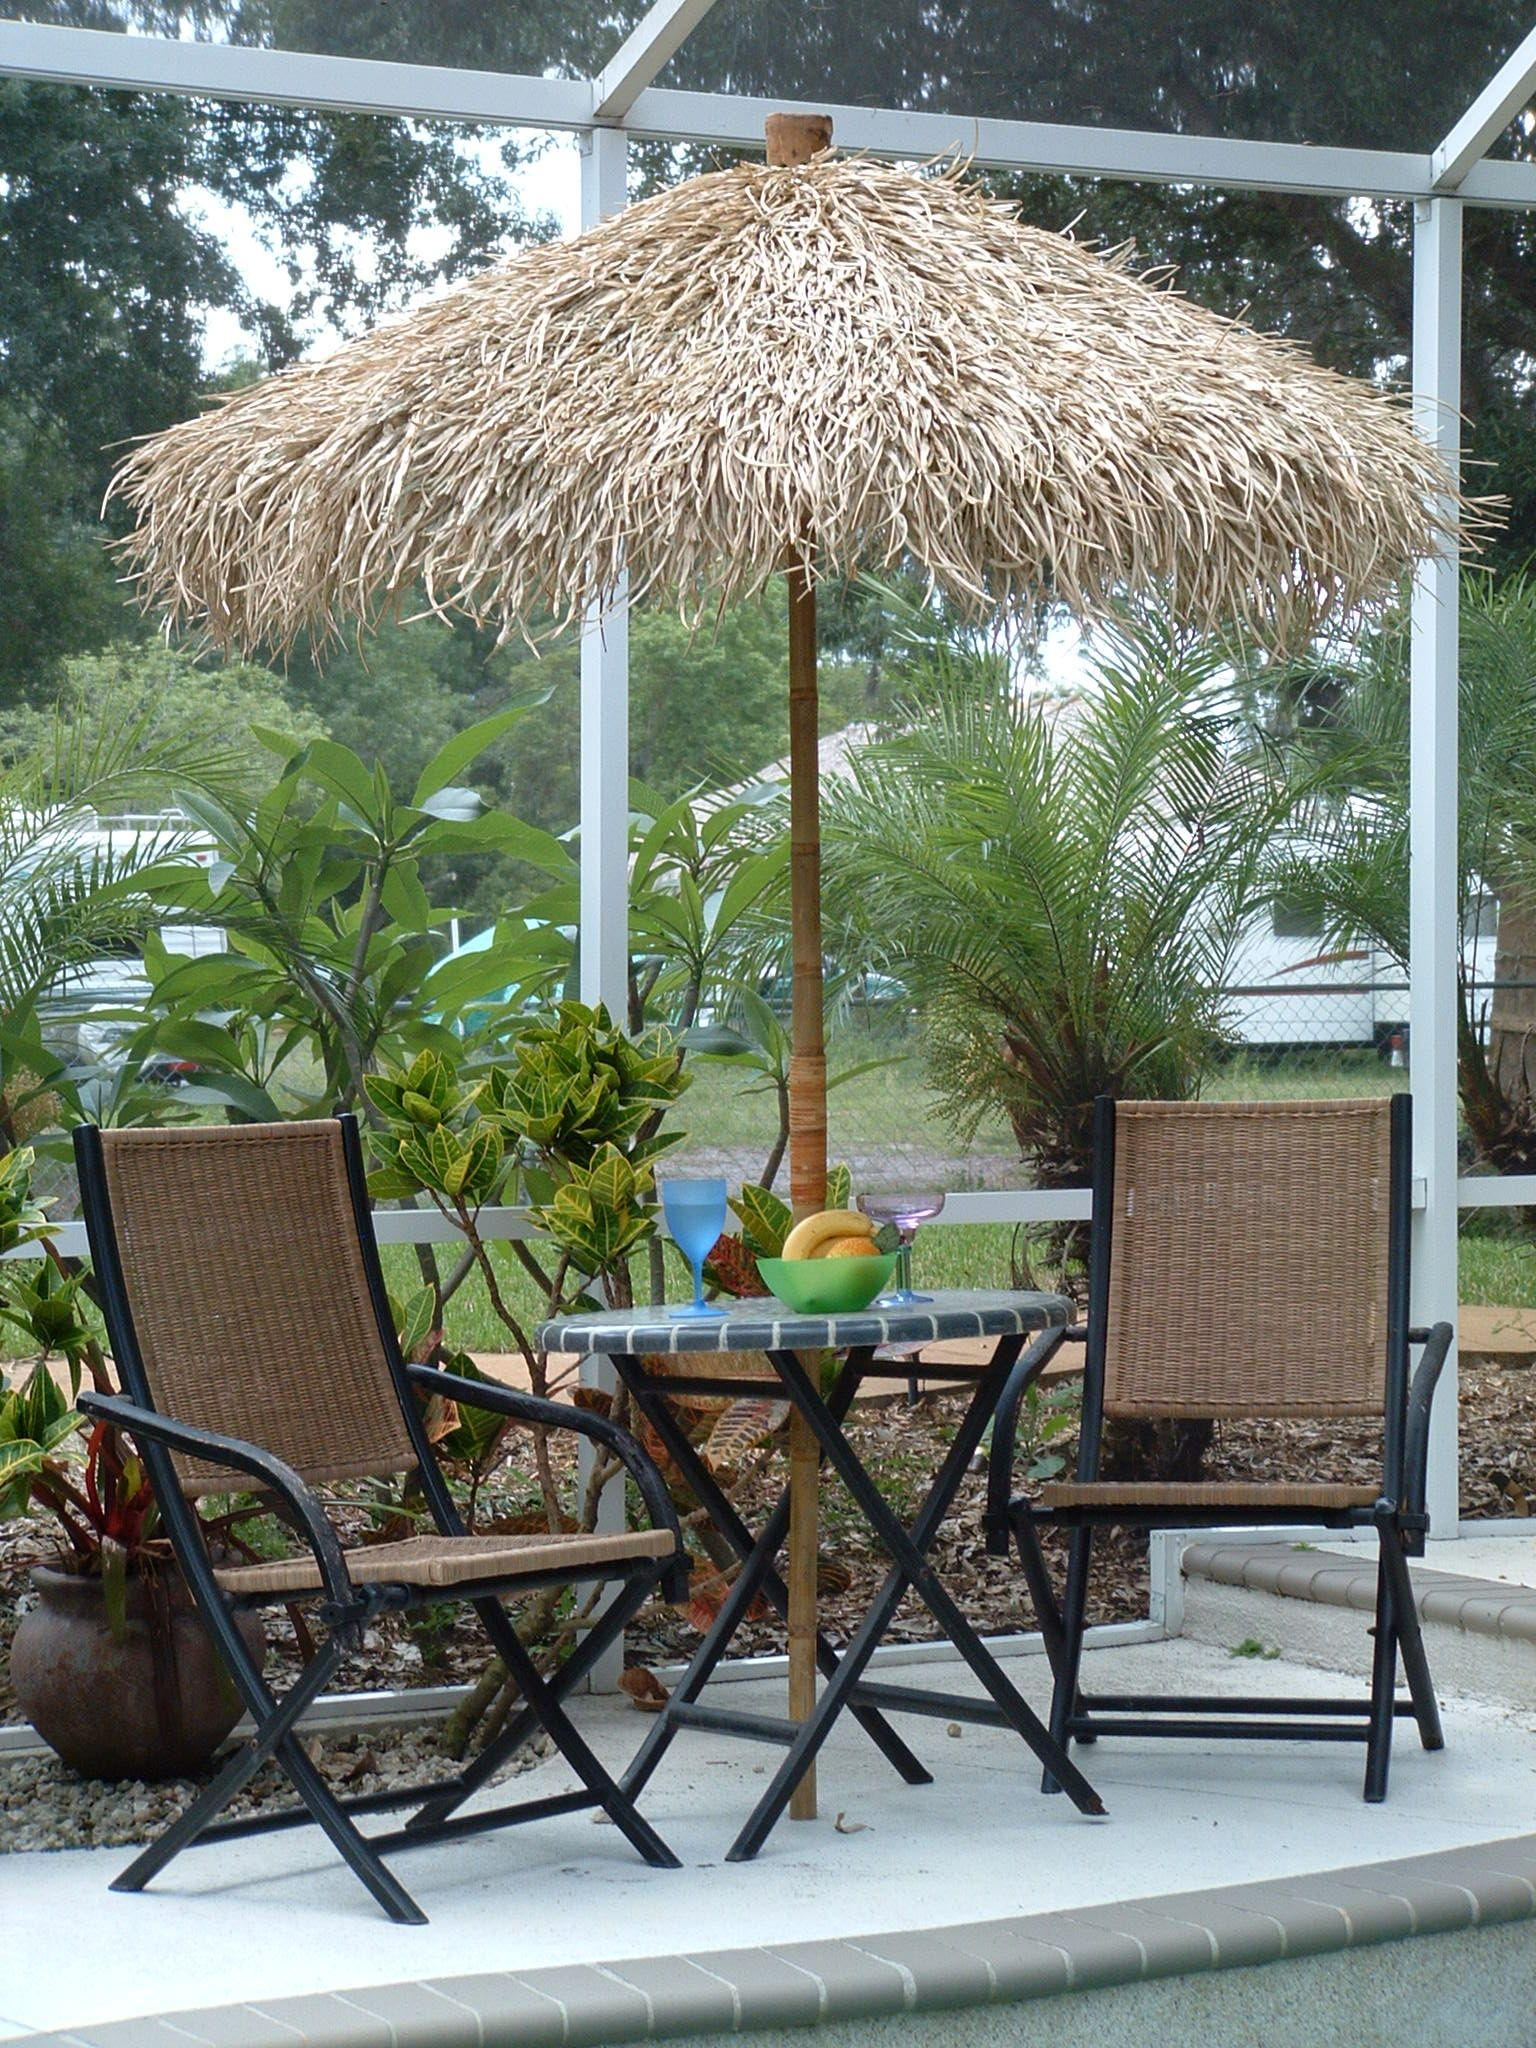 Bamboo Pole With Wide Enough Diameter To Fit Umbrella Pole In.. And Replace  The Faded Primary Colored Fabric Of Umbrella With Thatch.. Could It Be That  ...